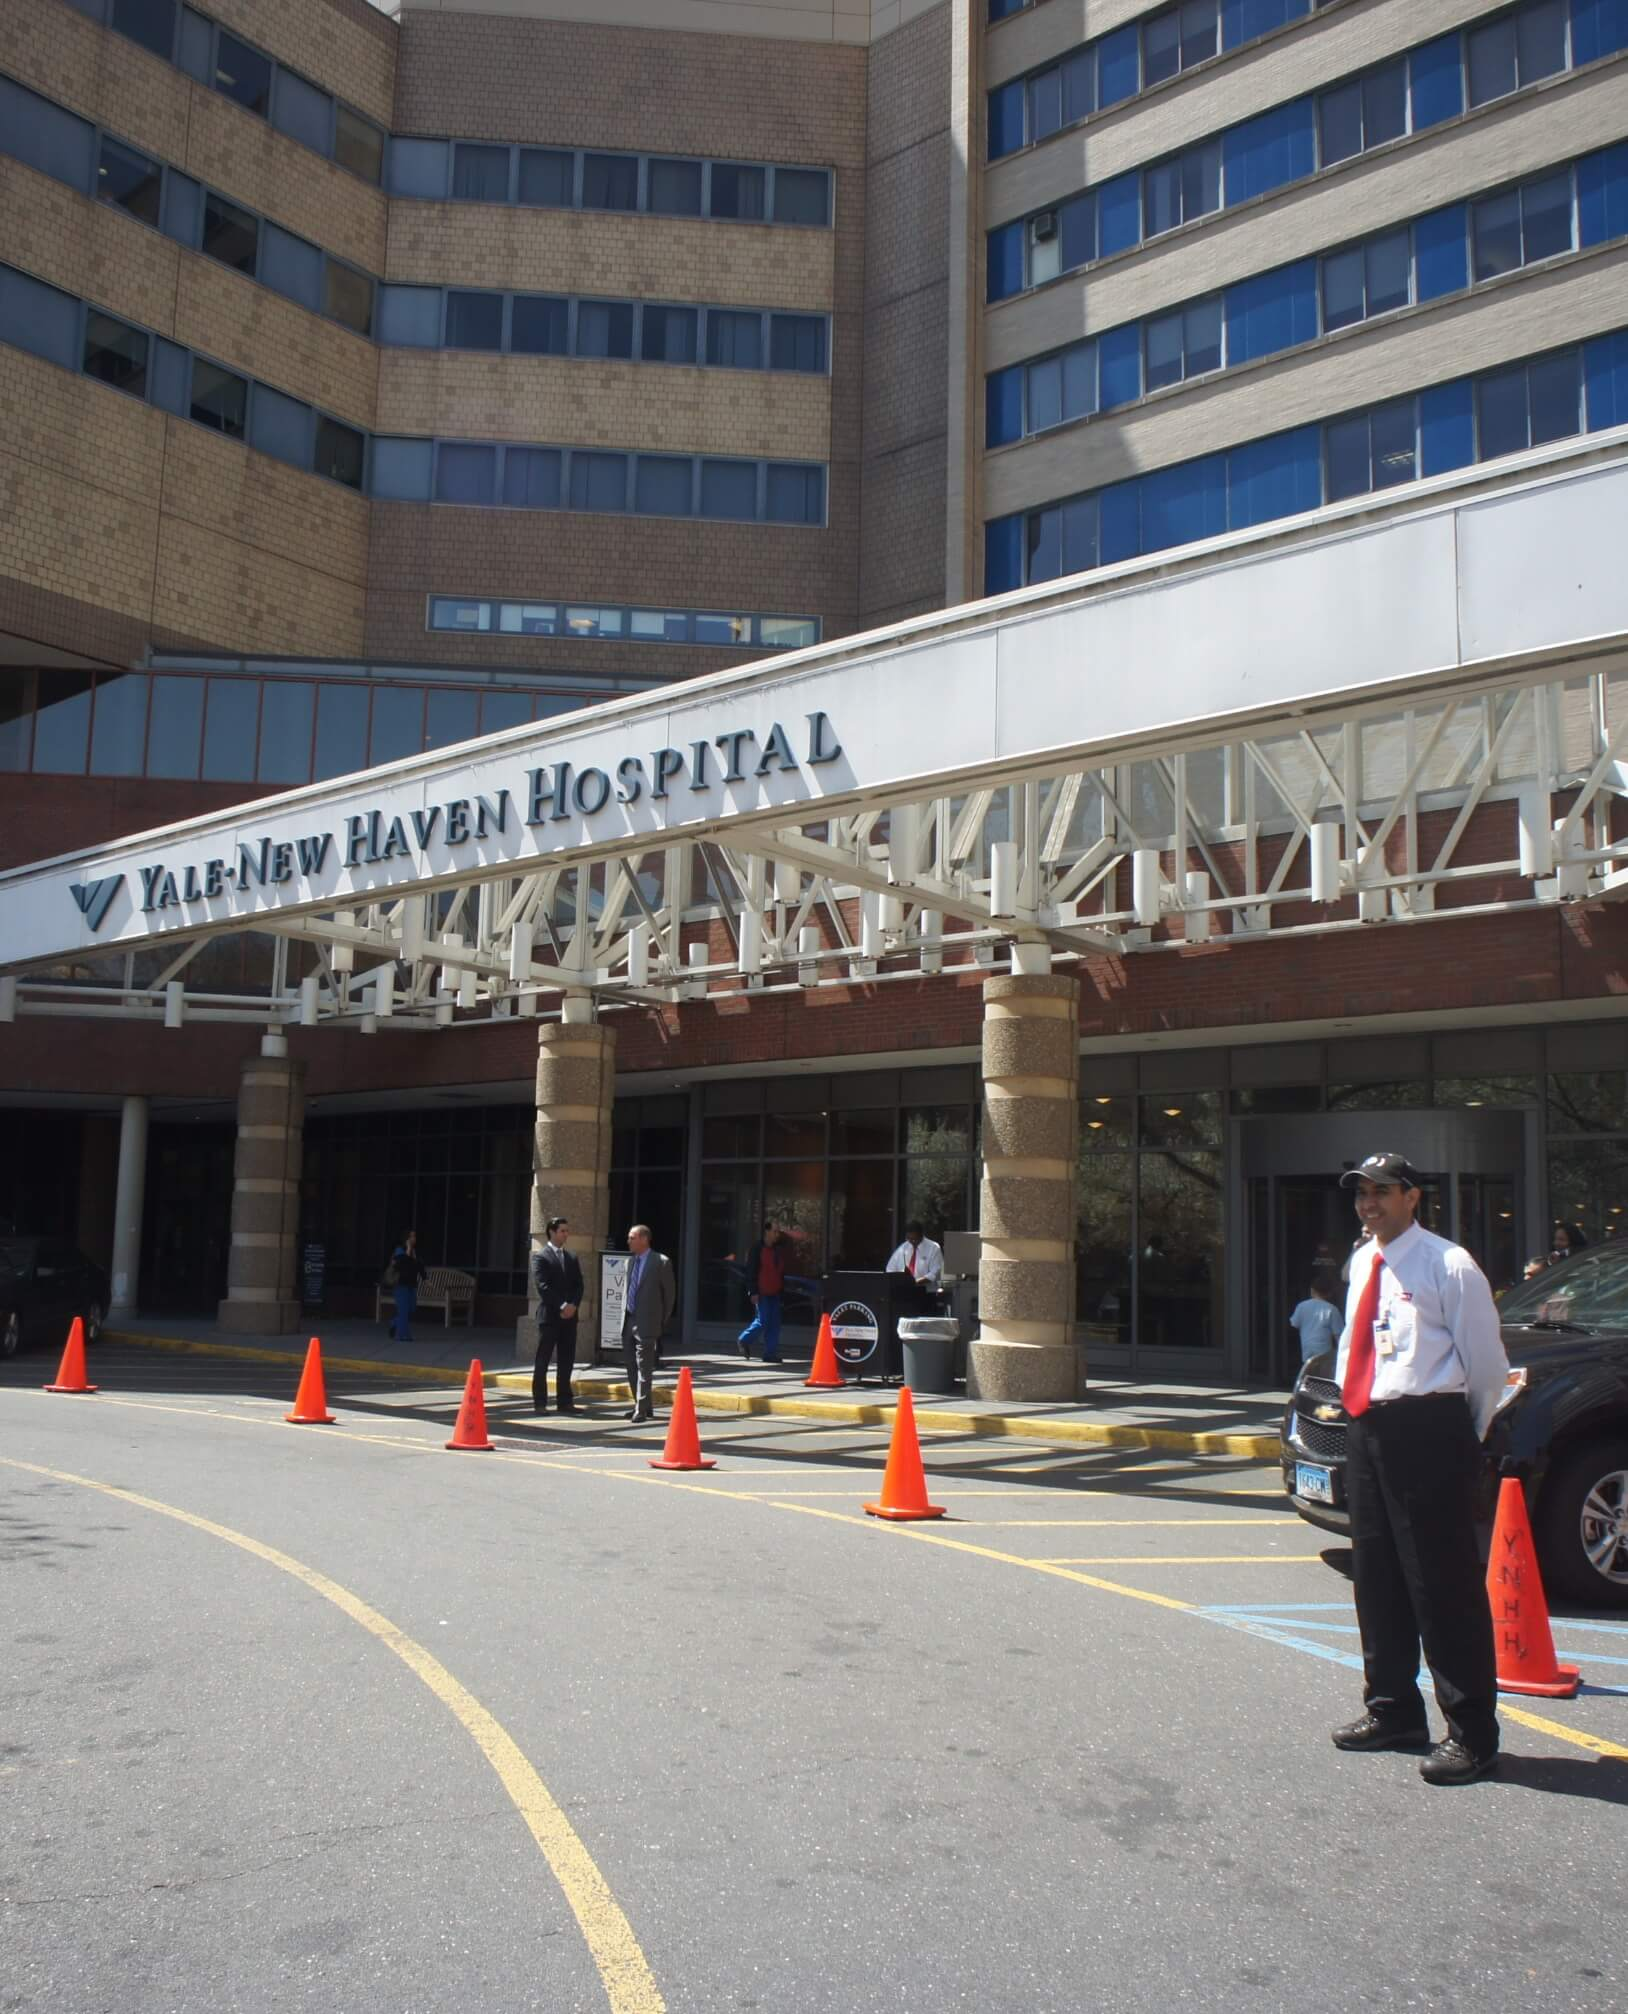 Yale New Haven Hospital | Propark Mobility Healthcare Parking and Valet Services